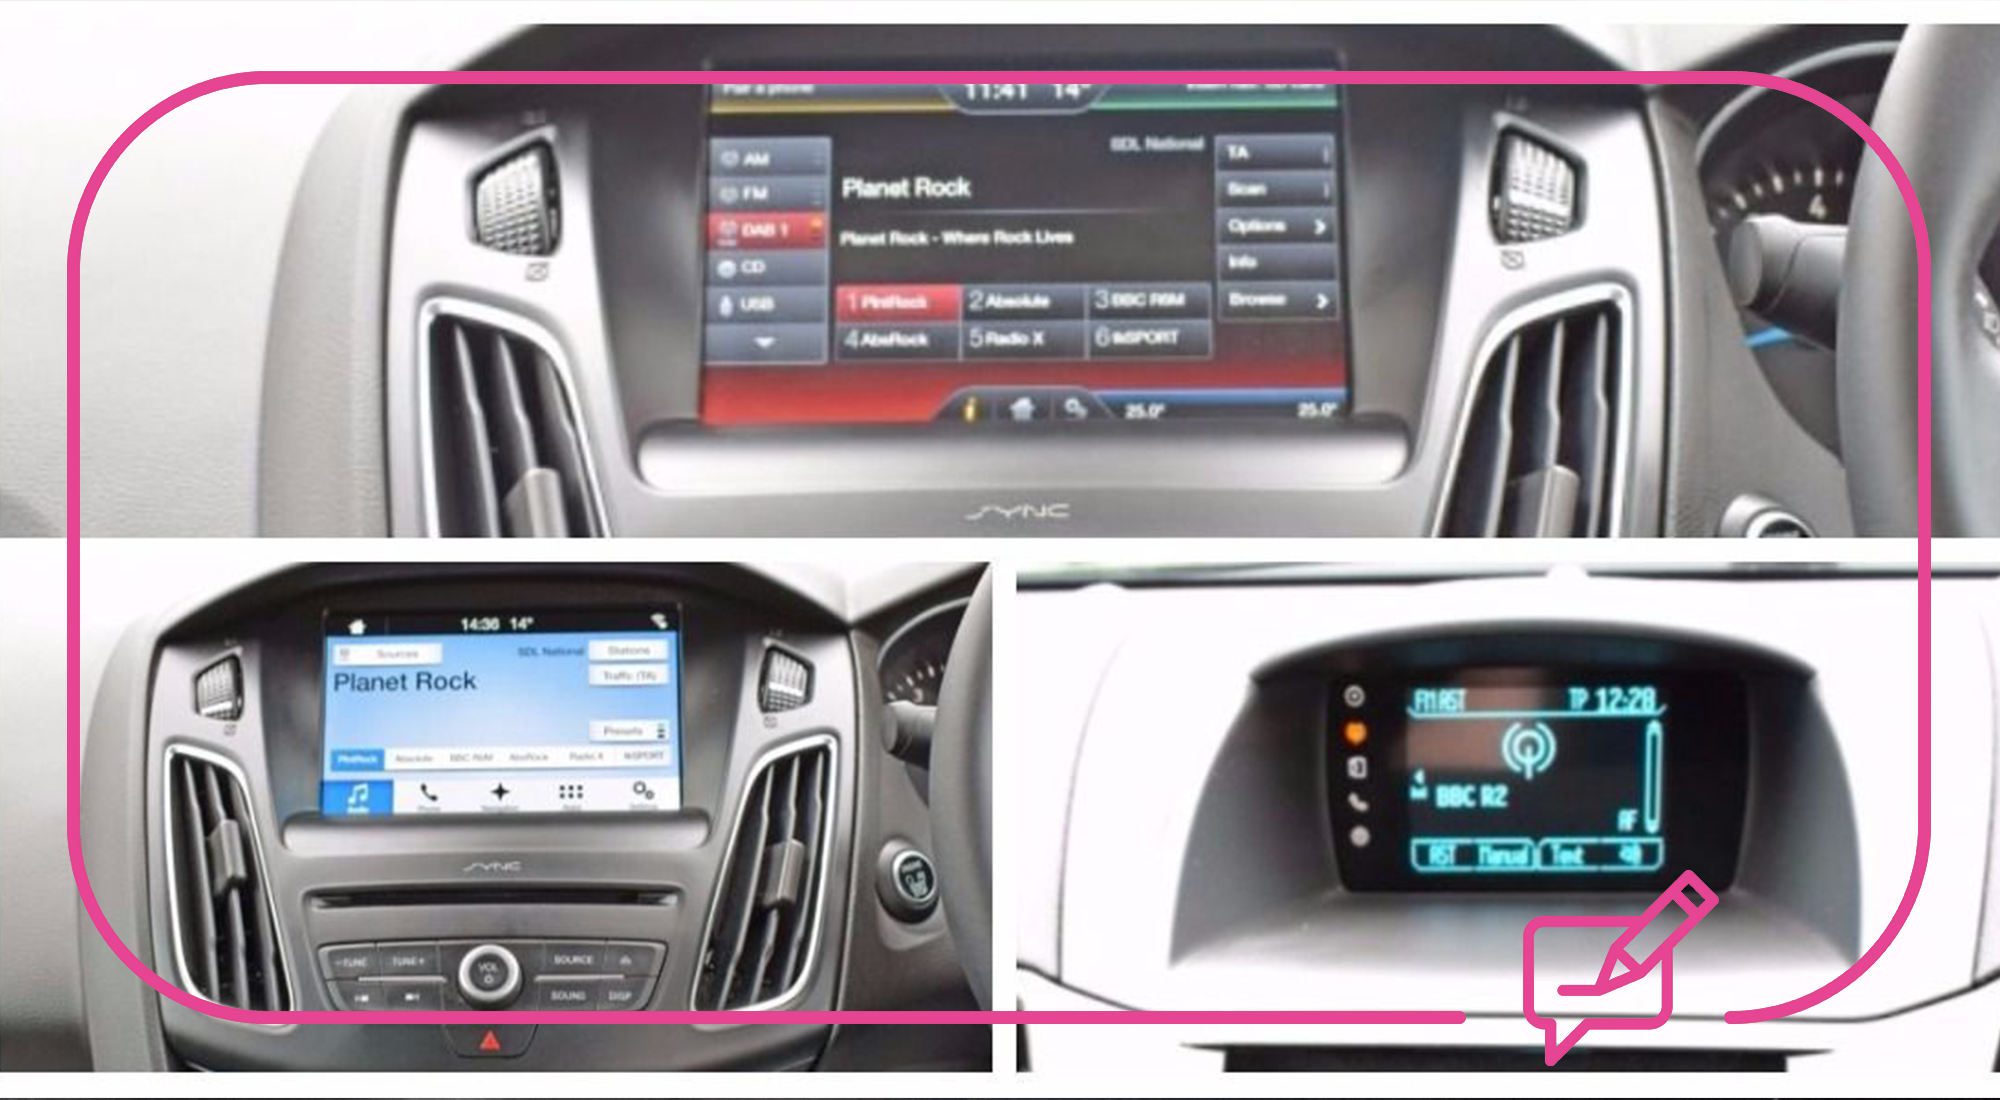 What is Ford SYNC and what does it do?